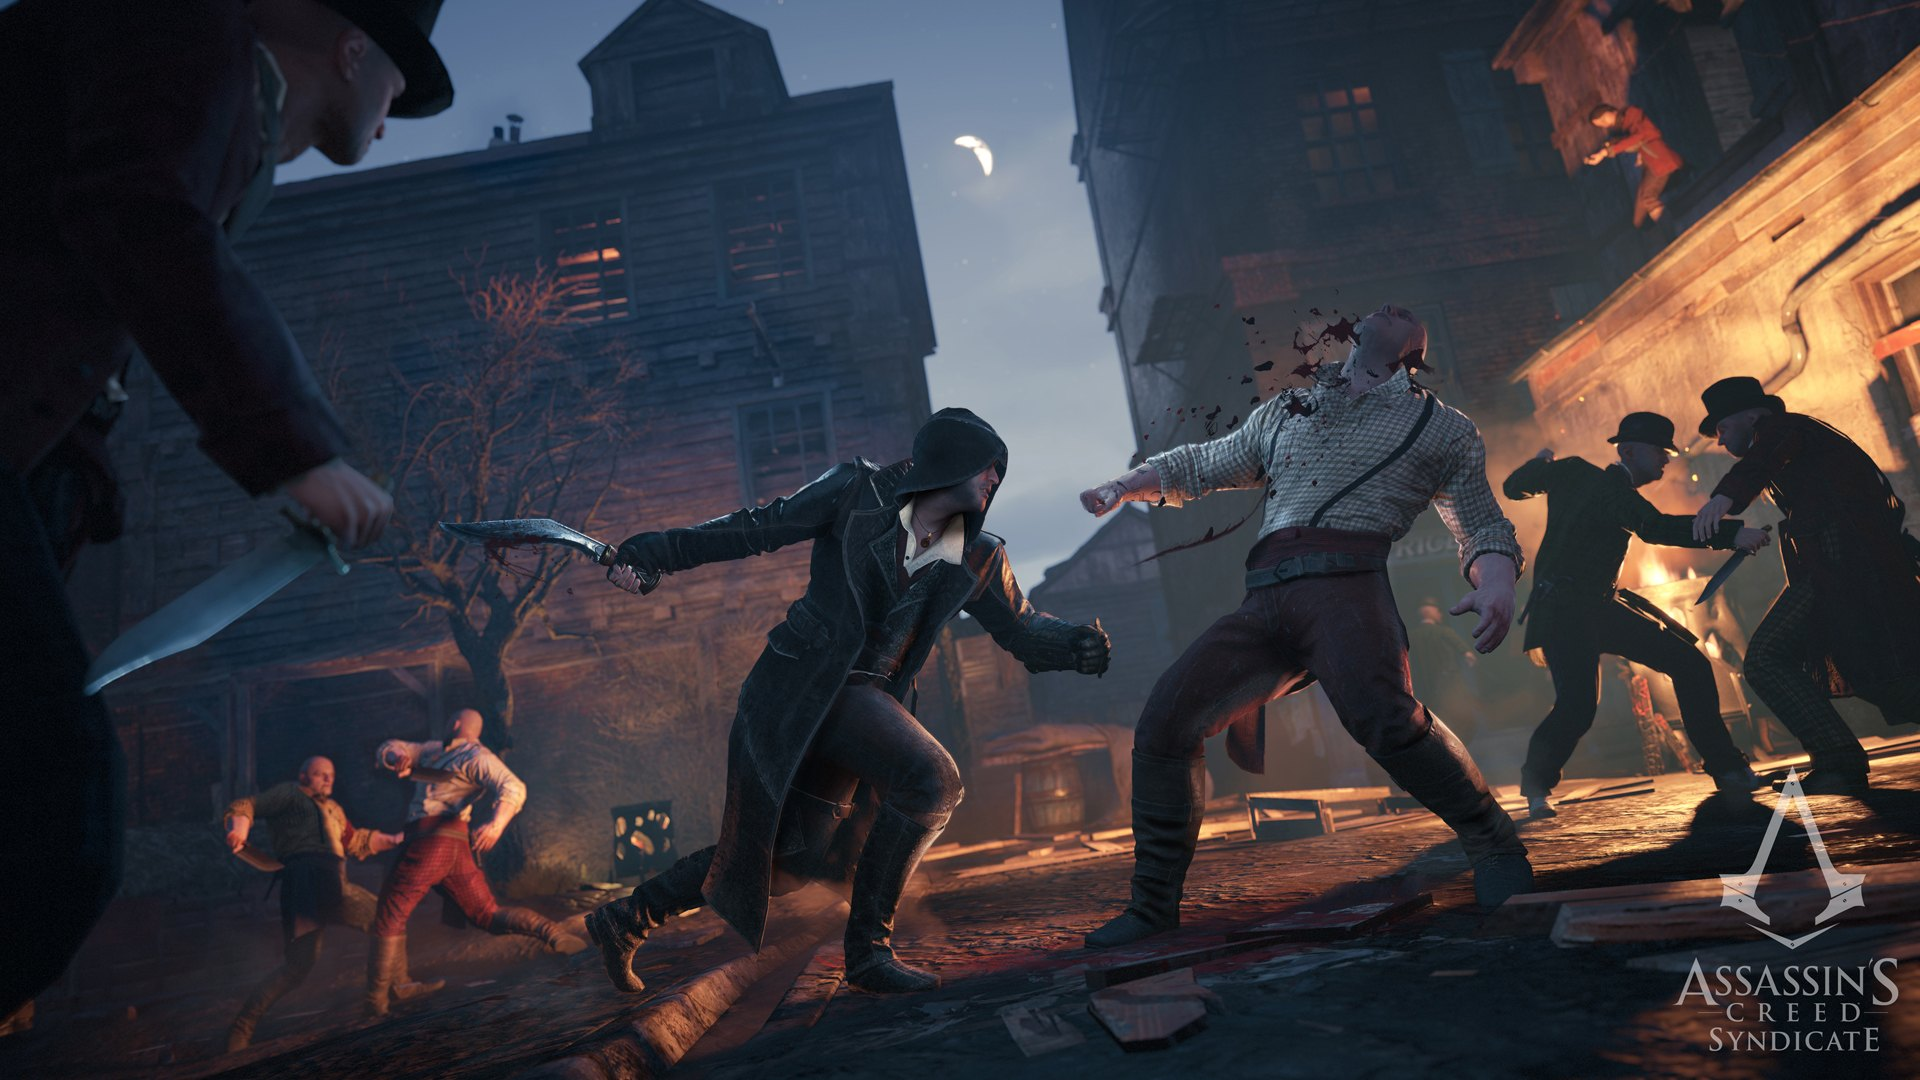 Assassin S Creed Syndicate Protagonists Jacob And Evie Get Combat Details